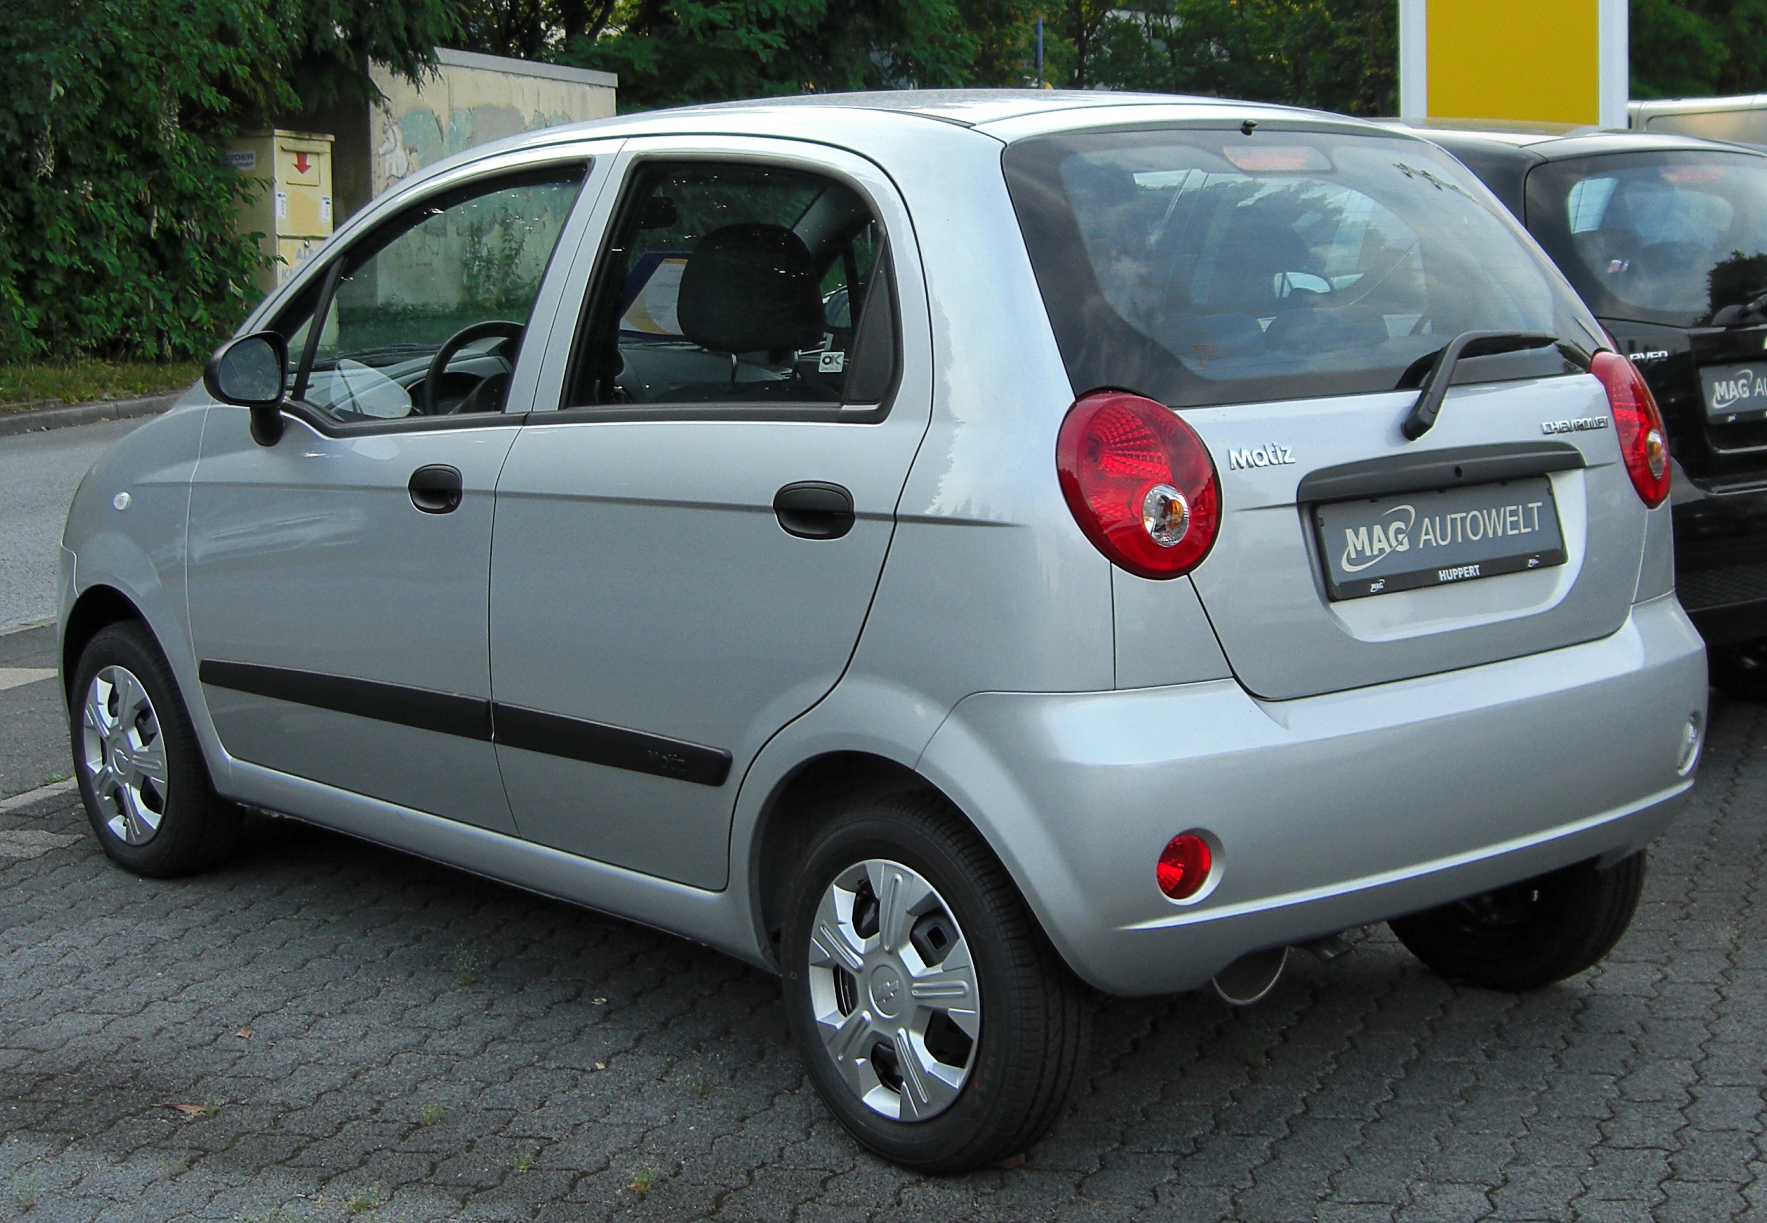 file chevrolet matiz m200 rear wikimedia commons. Black Bedroom Furniture Sets. Home Design Ideas